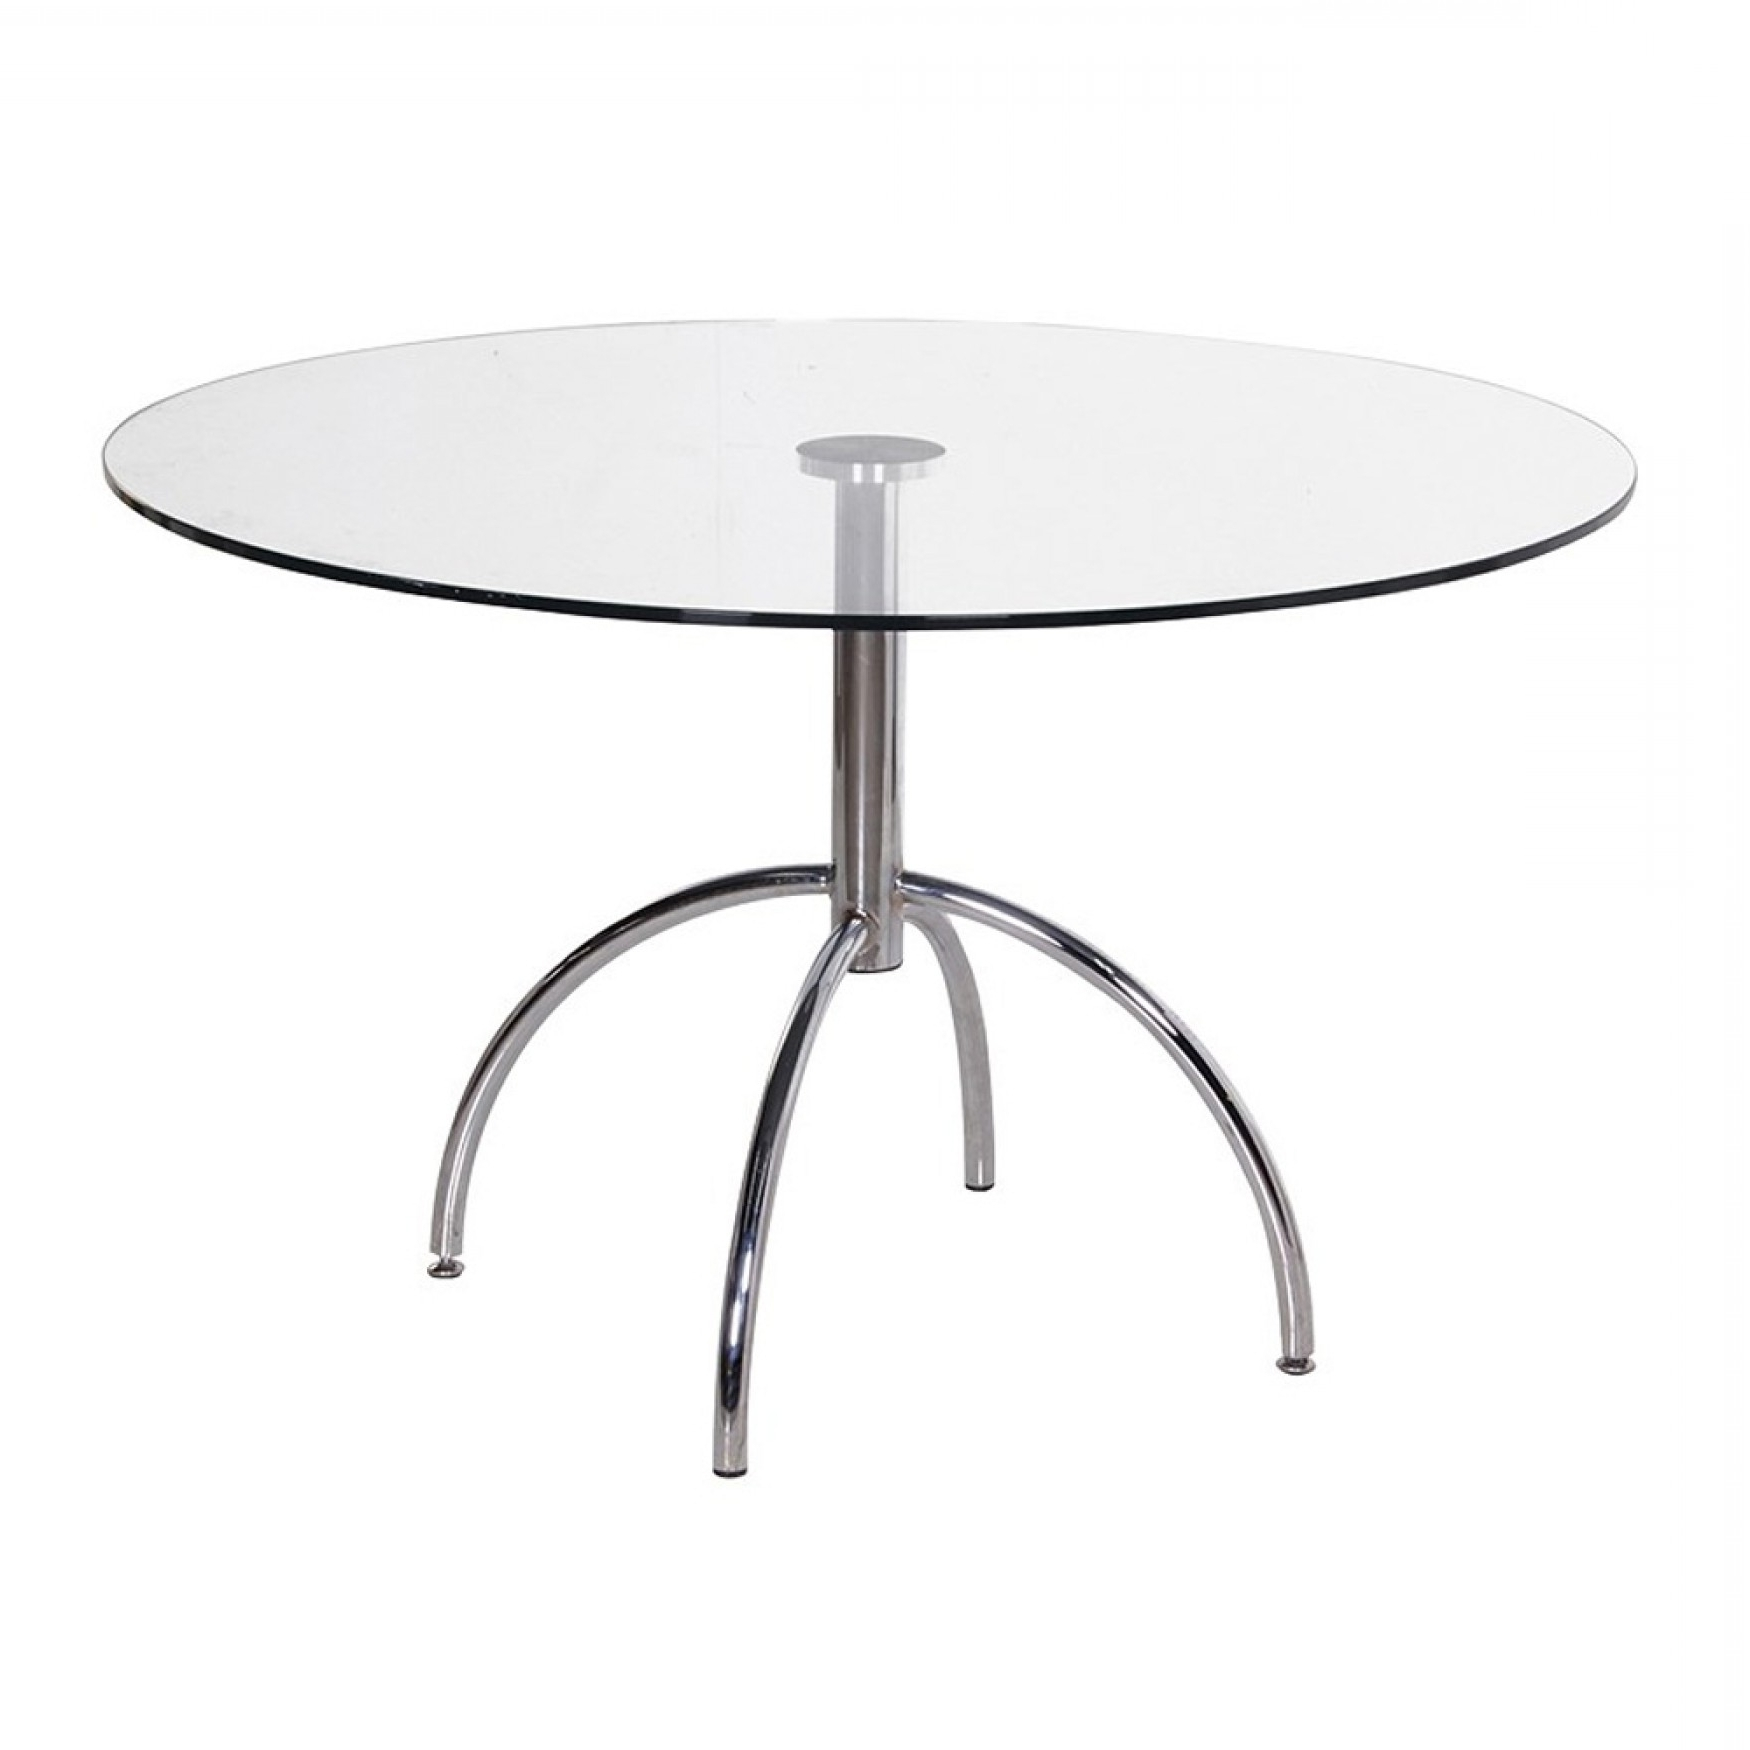 Chrome Glass Dining Tables Inside Famous Round Chrome/glass Dining Table (View 25 of 25)